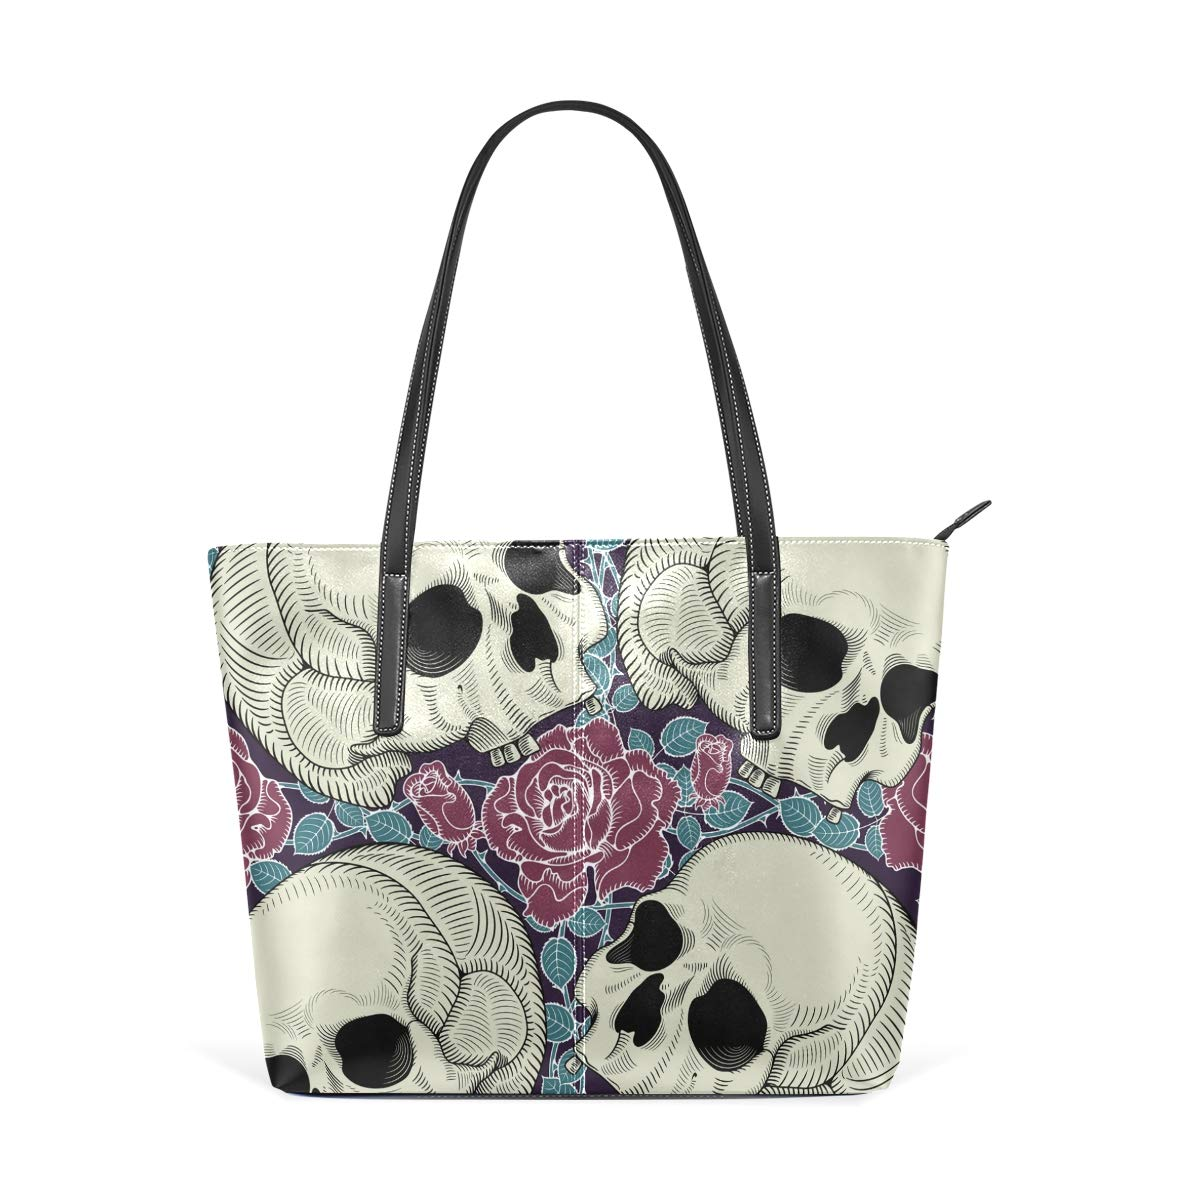 Skull Rose Flowers Day Of The Dead Vintage Illustration Womens PU Leather Tote Shoulder Bags Handbags Casual Bag